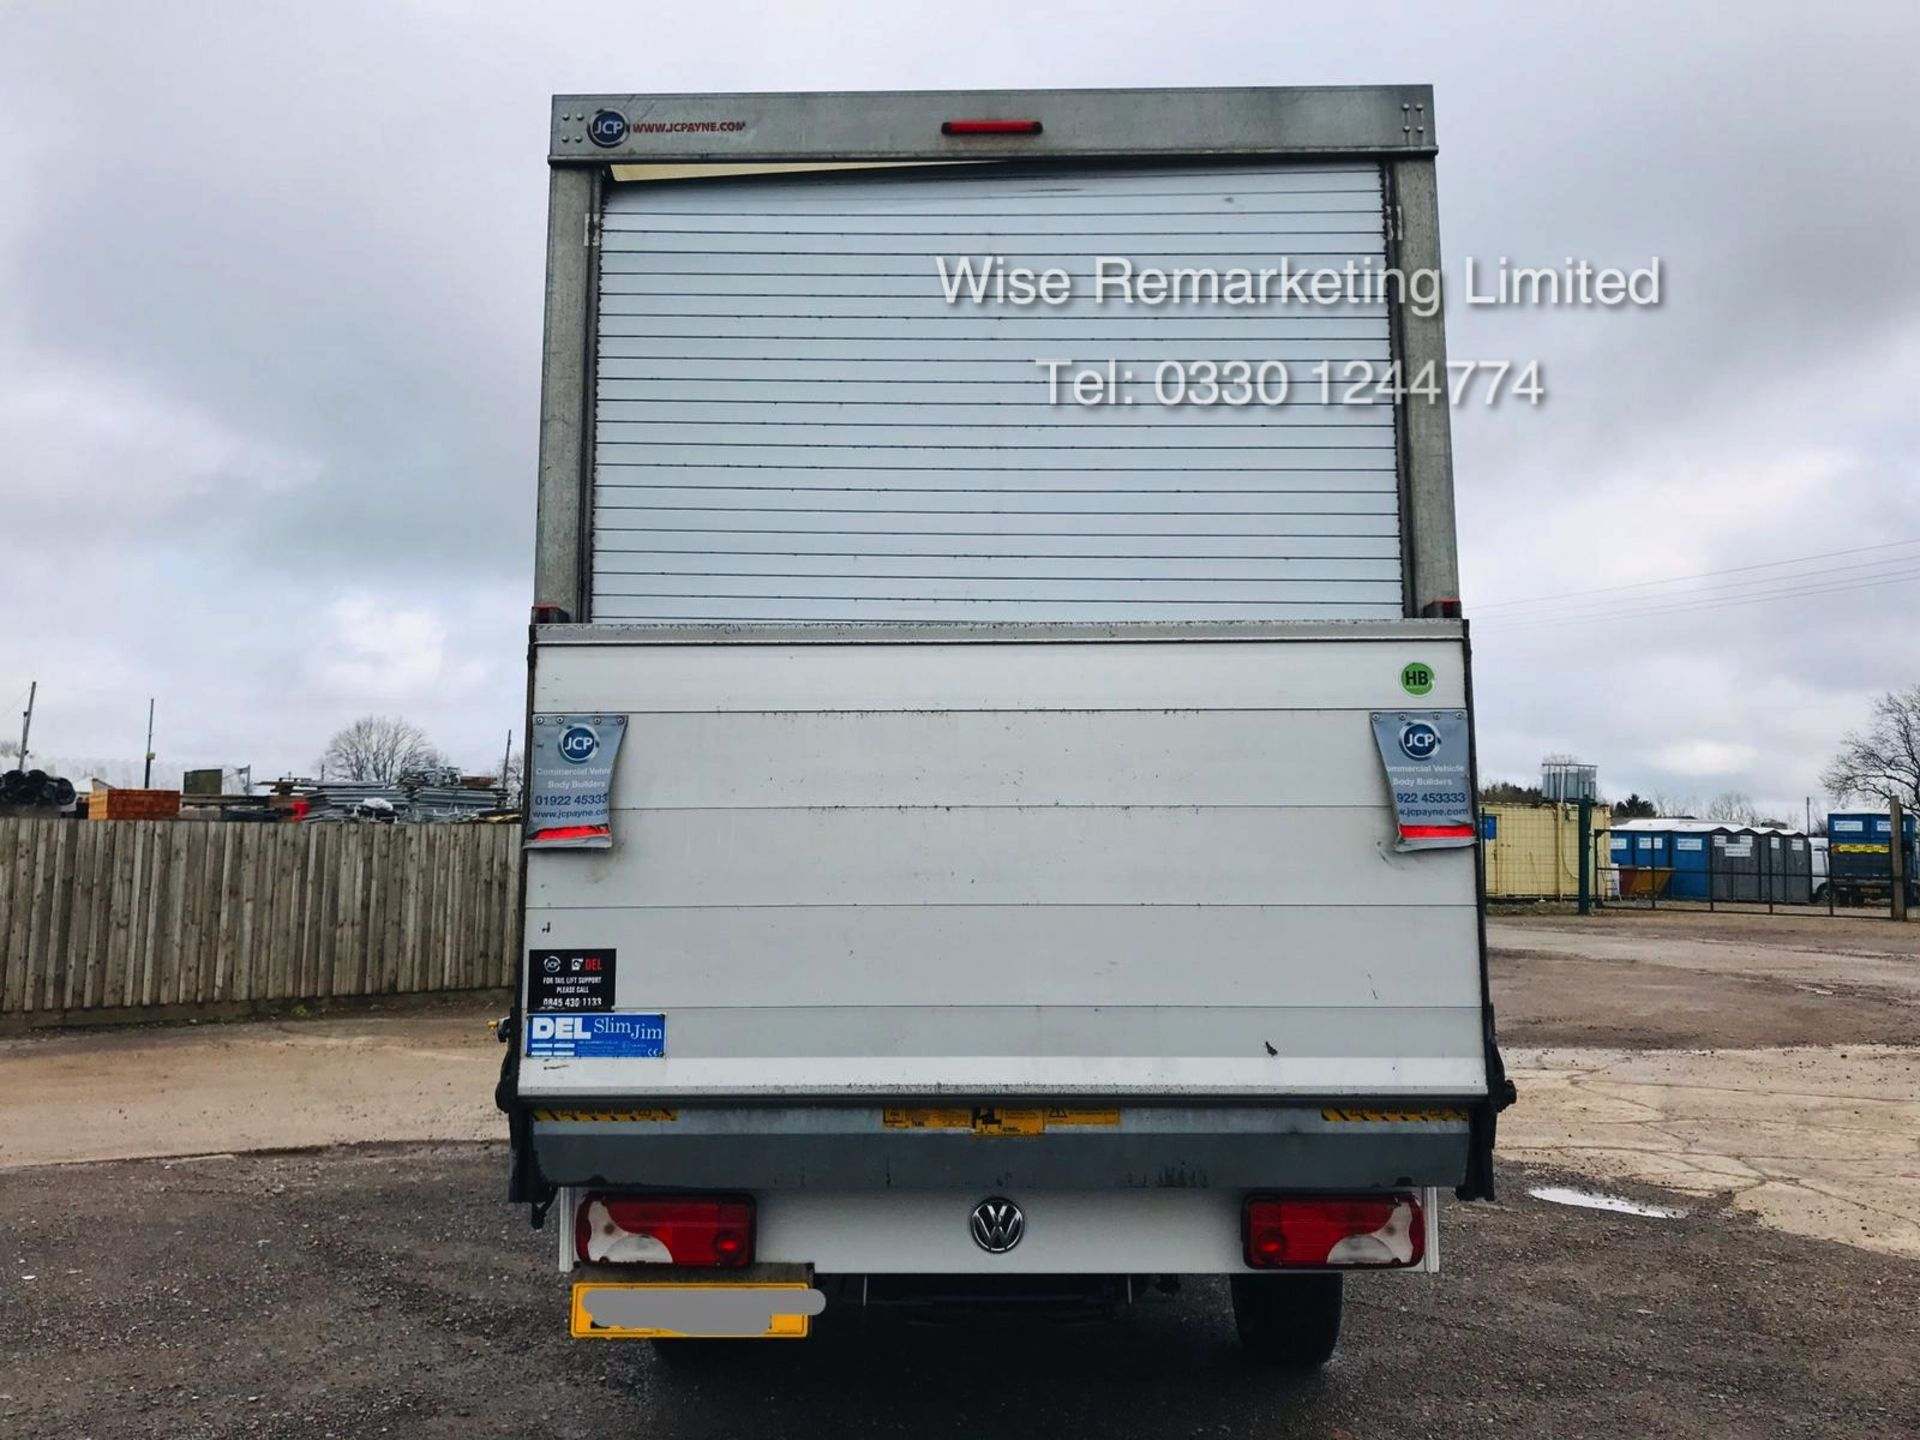 Lot 3 - Volkswagen Crafter CR35 2.0 TDI (136) LWB 15ft Luton Box Van - 2017 Model - Euro 6 Ulez Compliant